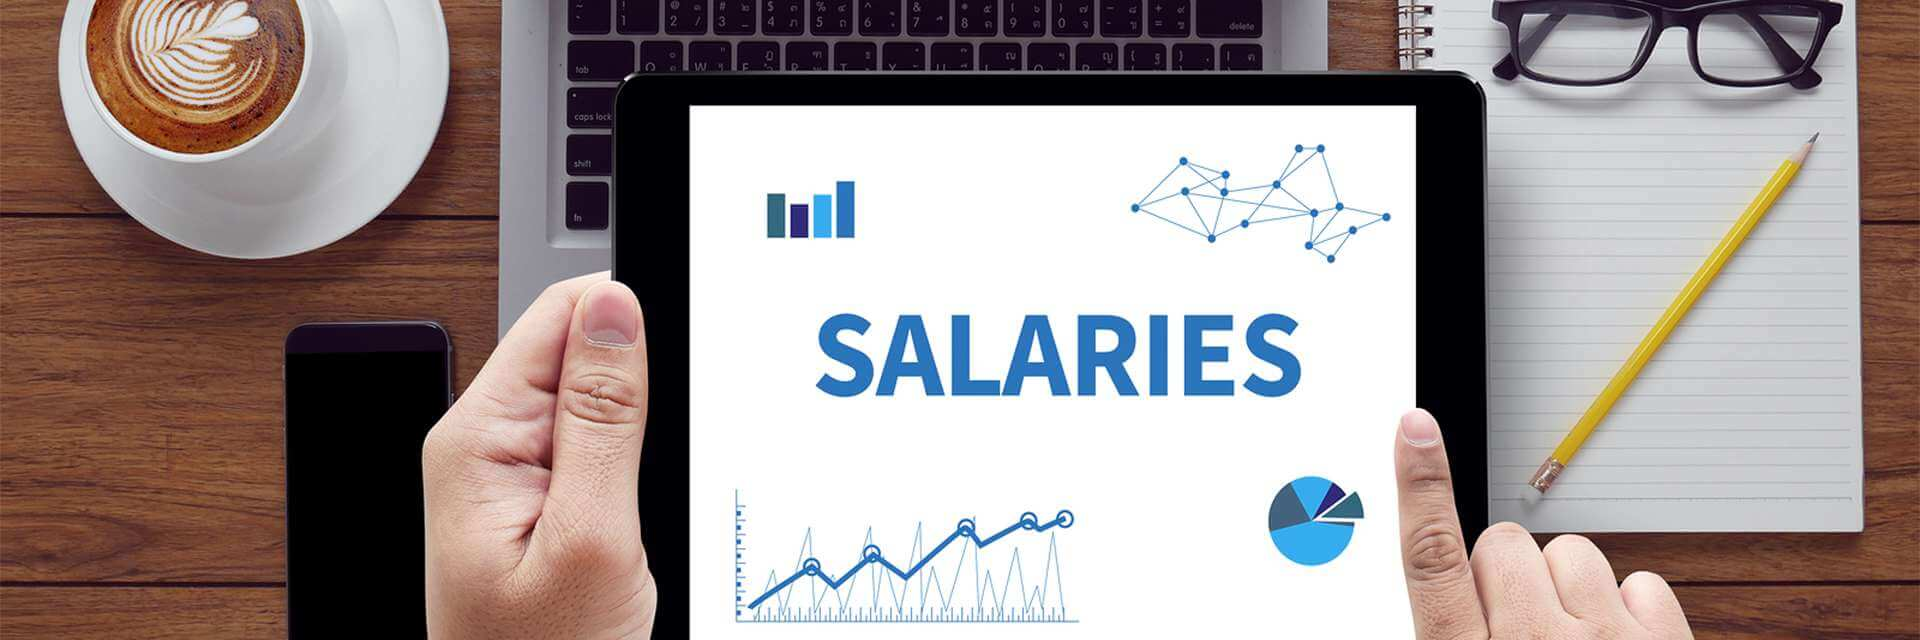 Event Security Manager Salary